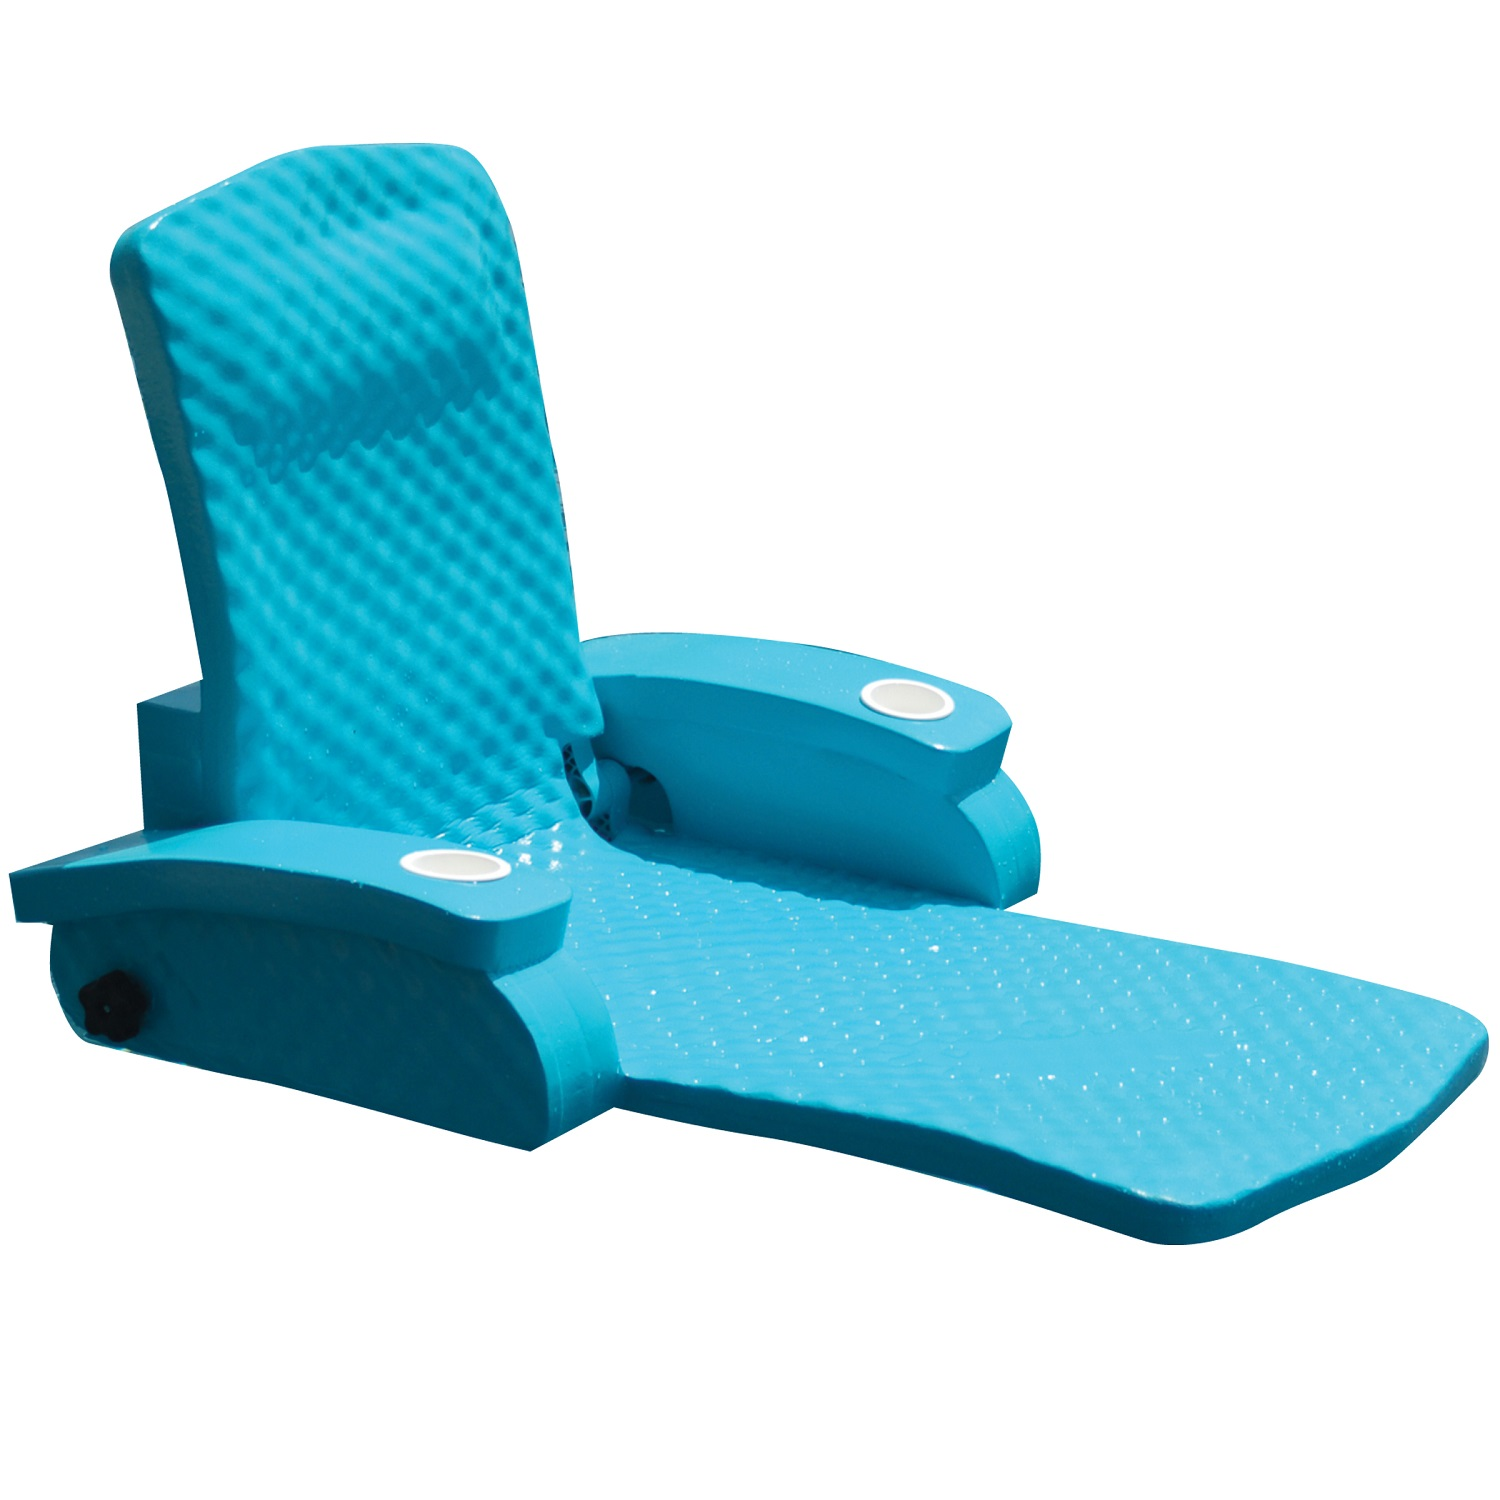 TRC Recreation Super Soft Adjust Recliner in Marine Blue